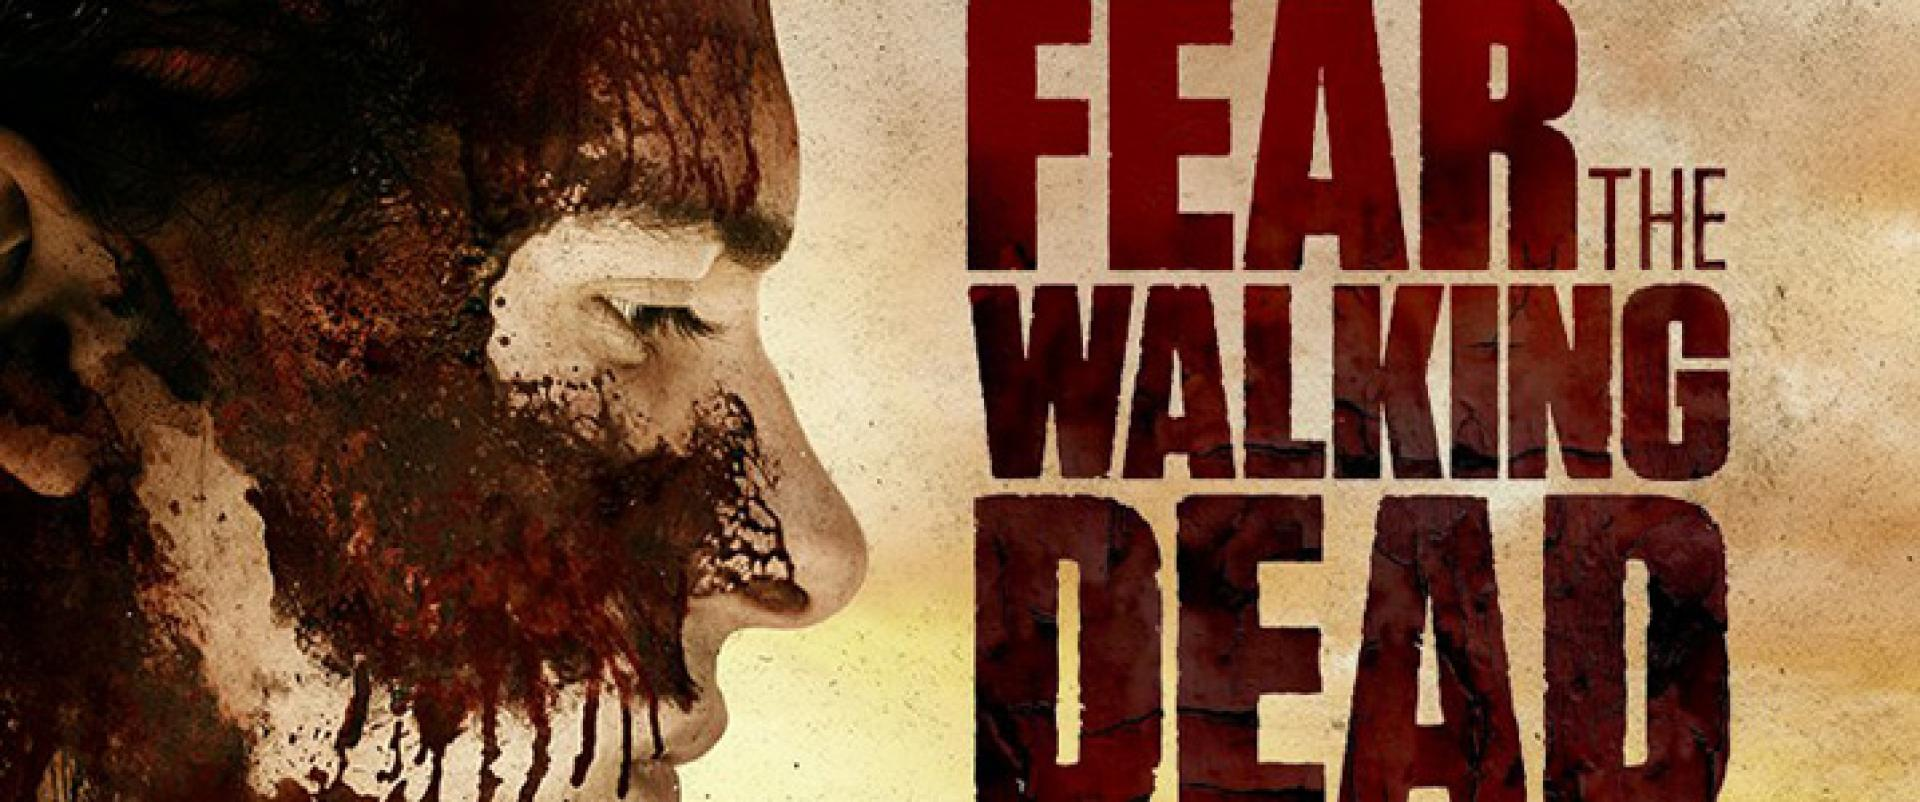 Fear the Walking Dead 3x01-02